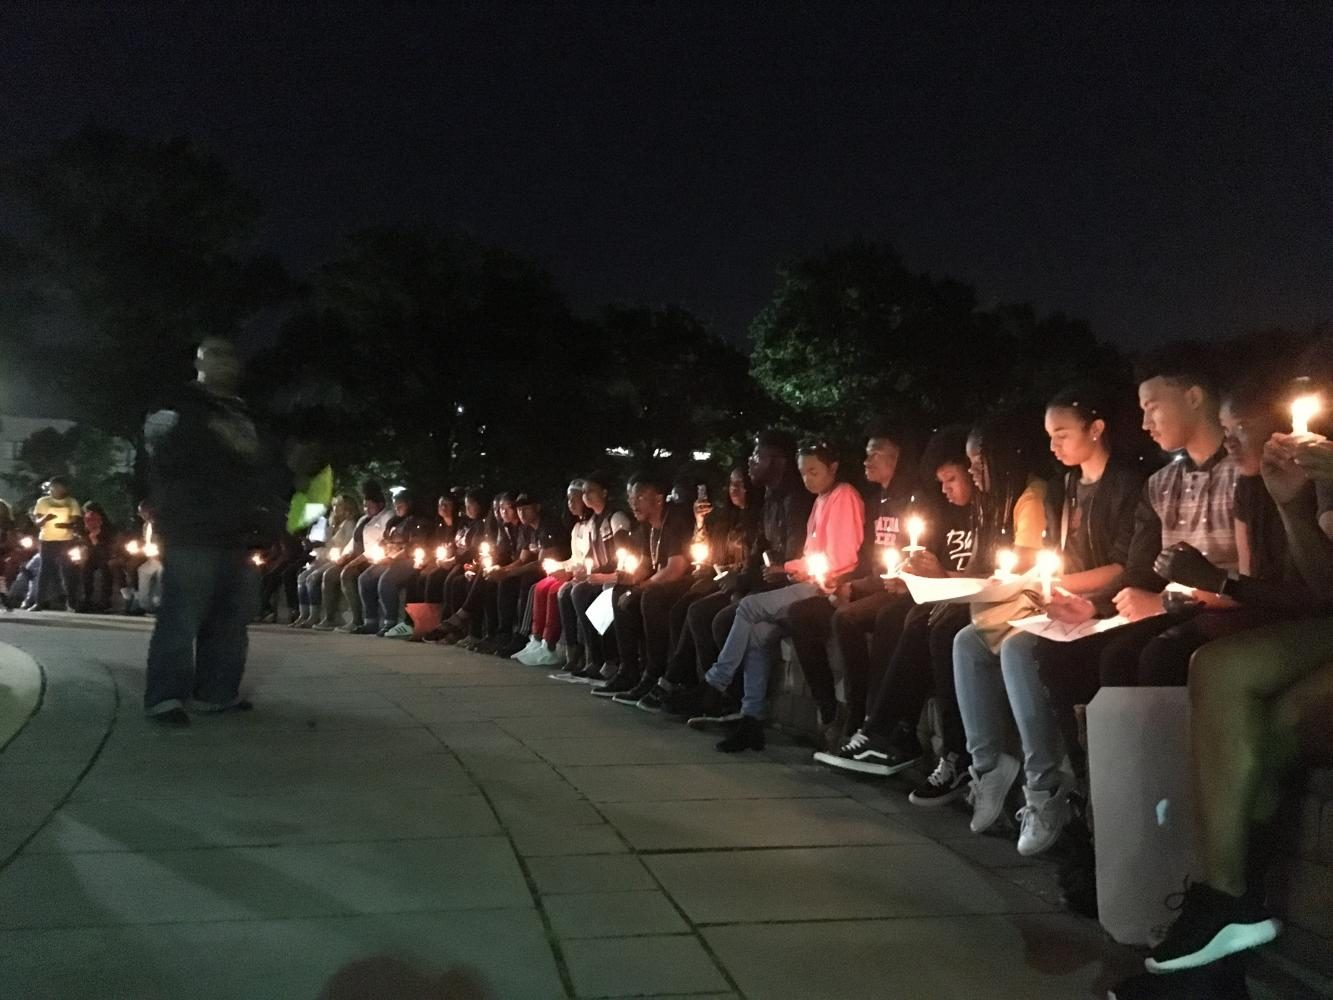 Students+lit+candles+to+remember+the+victims+of+police+brutality%2C+white+supremacy+and+gun+violence.